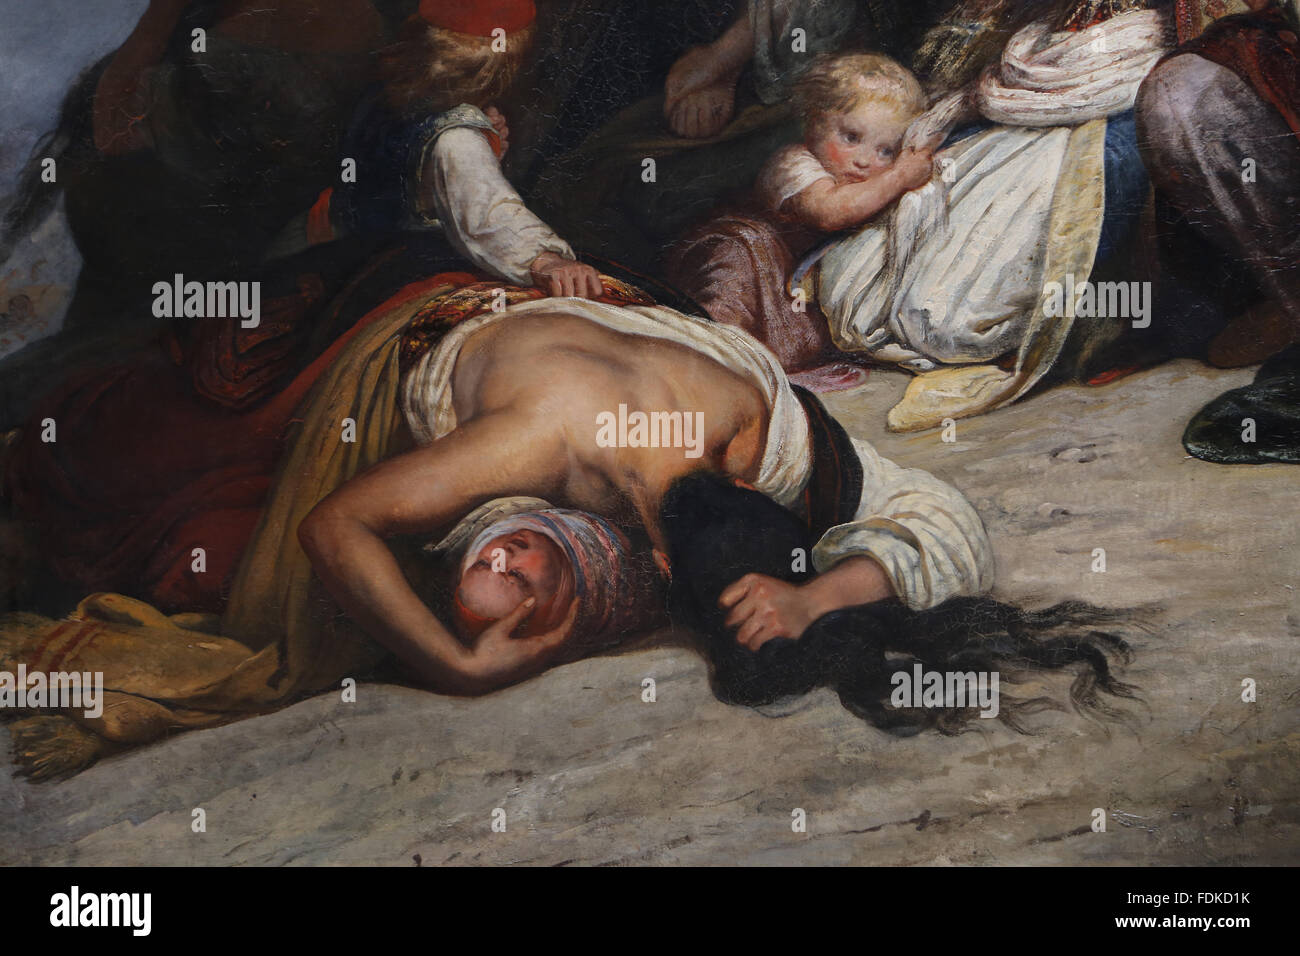 The women souliotes,1827. By Ary Scheffer (1795-1858). Heroic suicide of Souliote women. Souliote wars 1803. - Stock Image